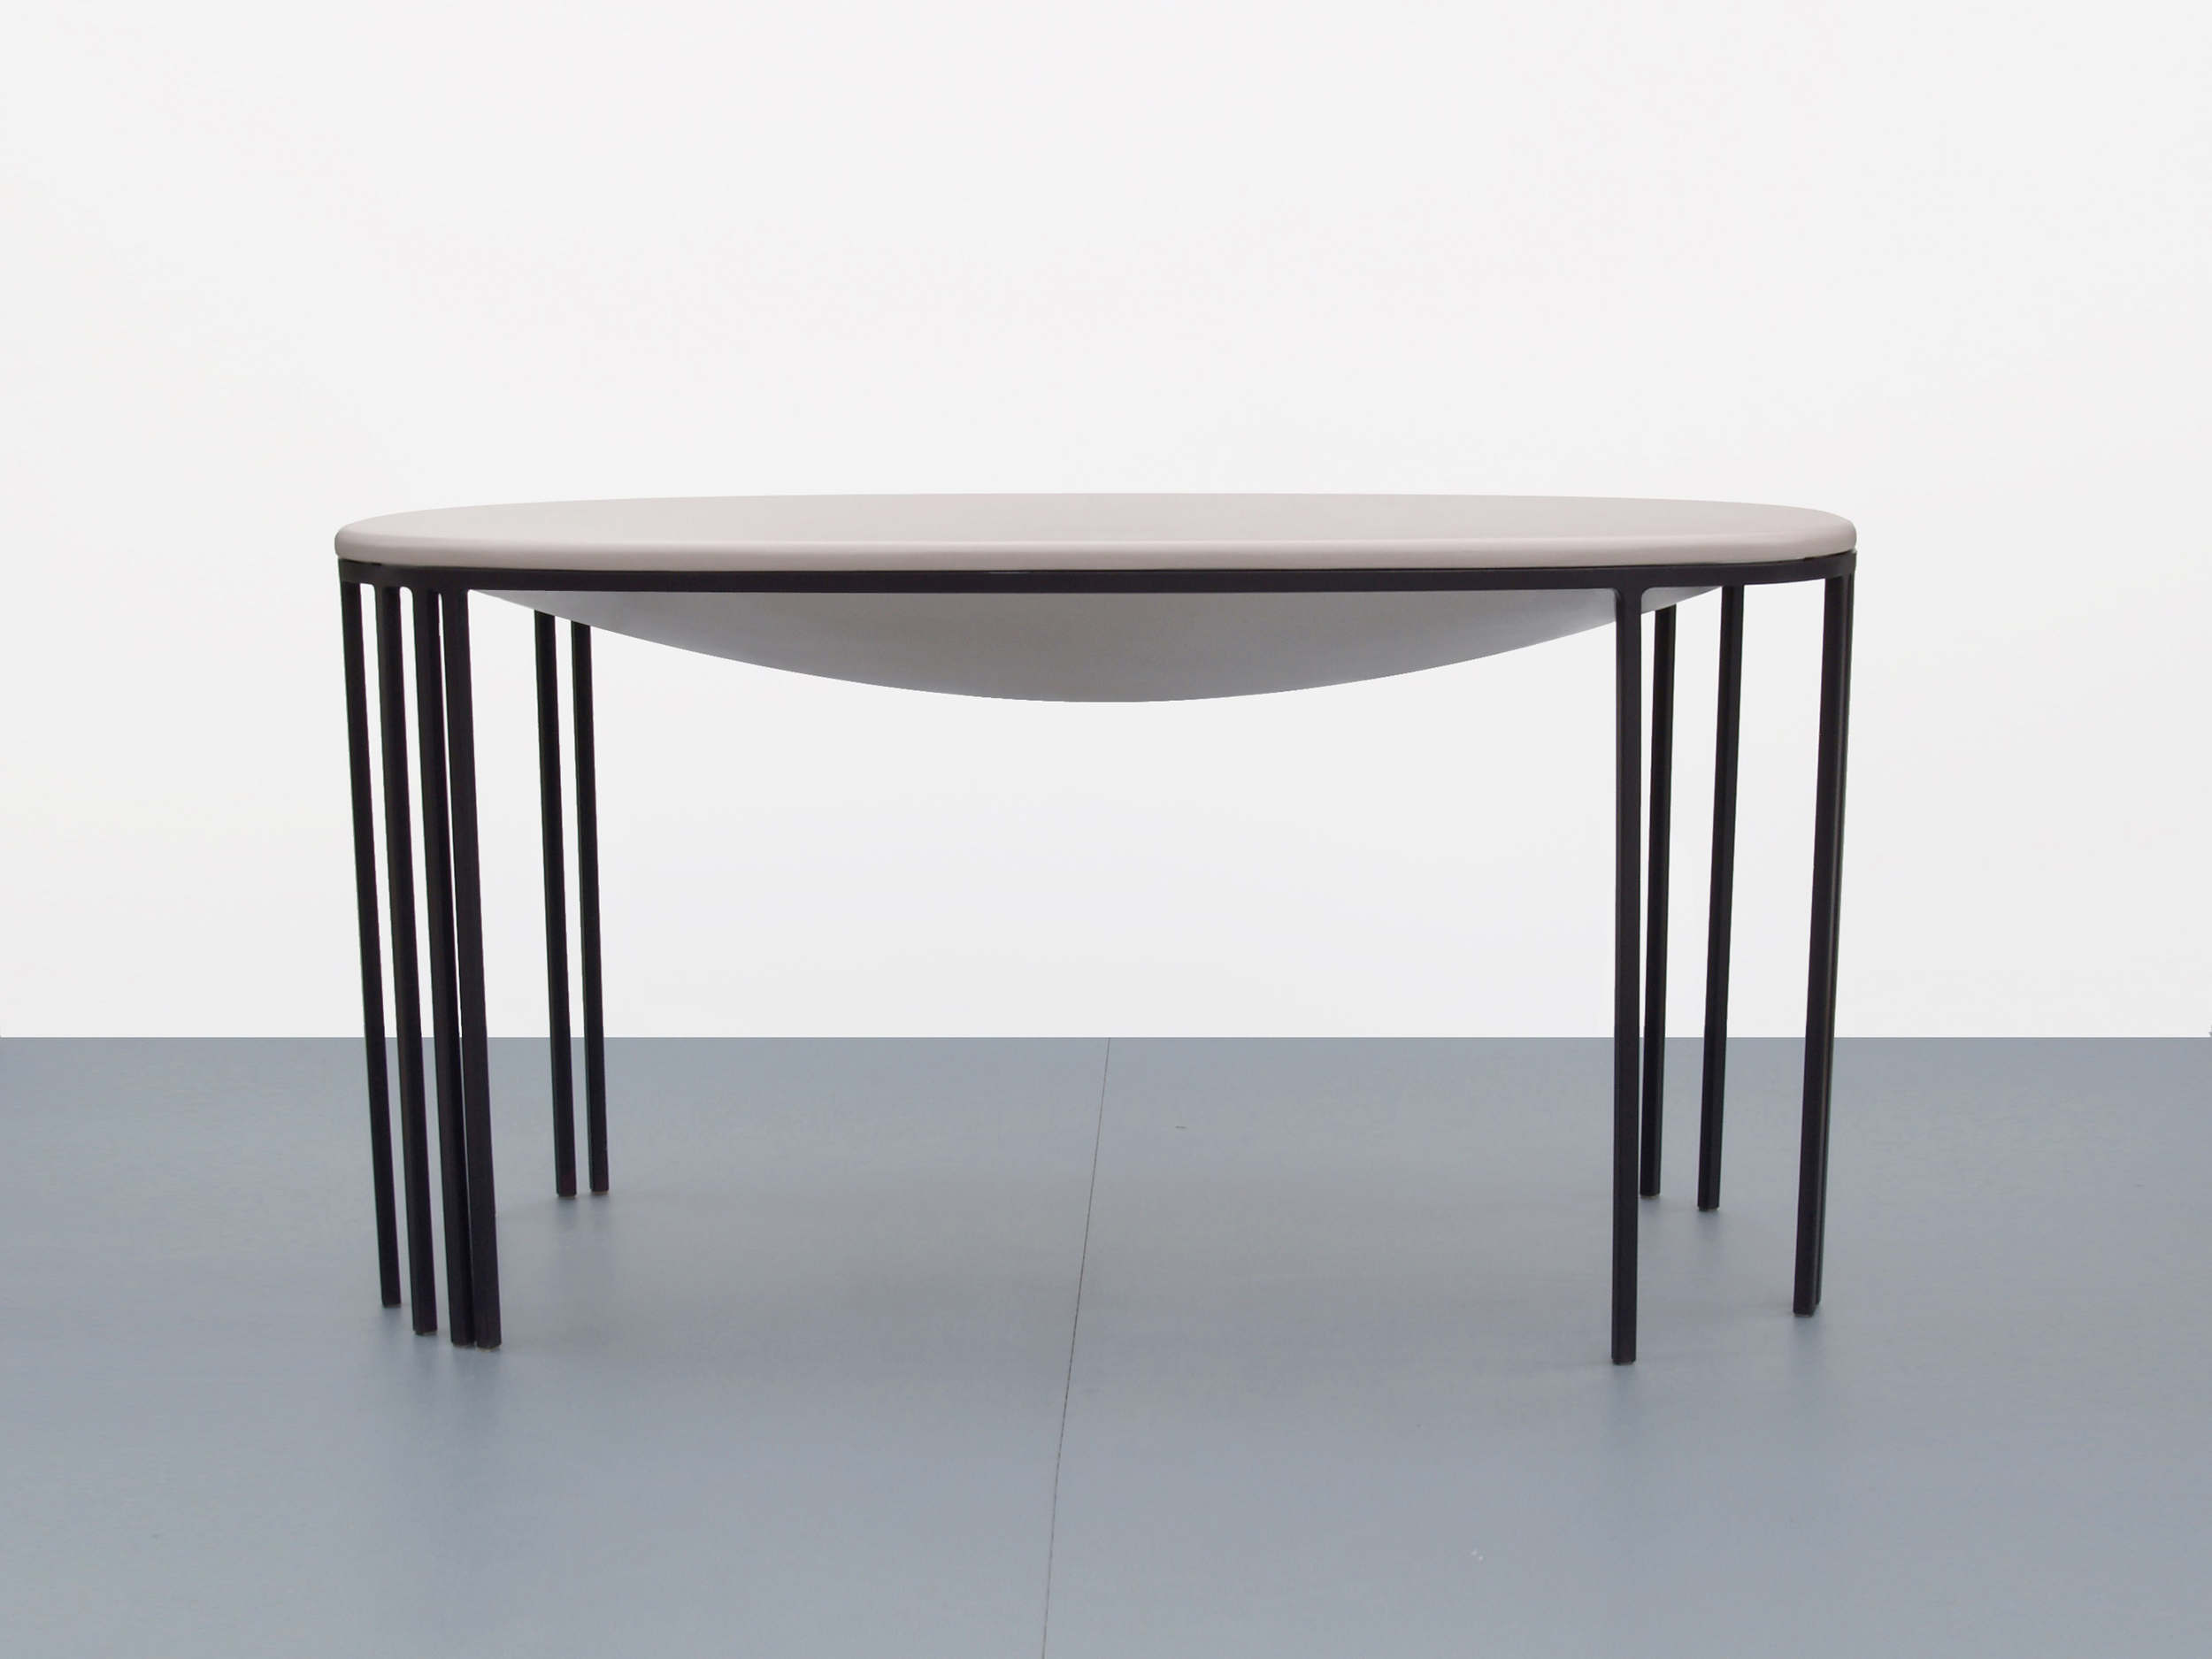 i believe that these tactile qualities add to the design of the table and the way we interact with the object